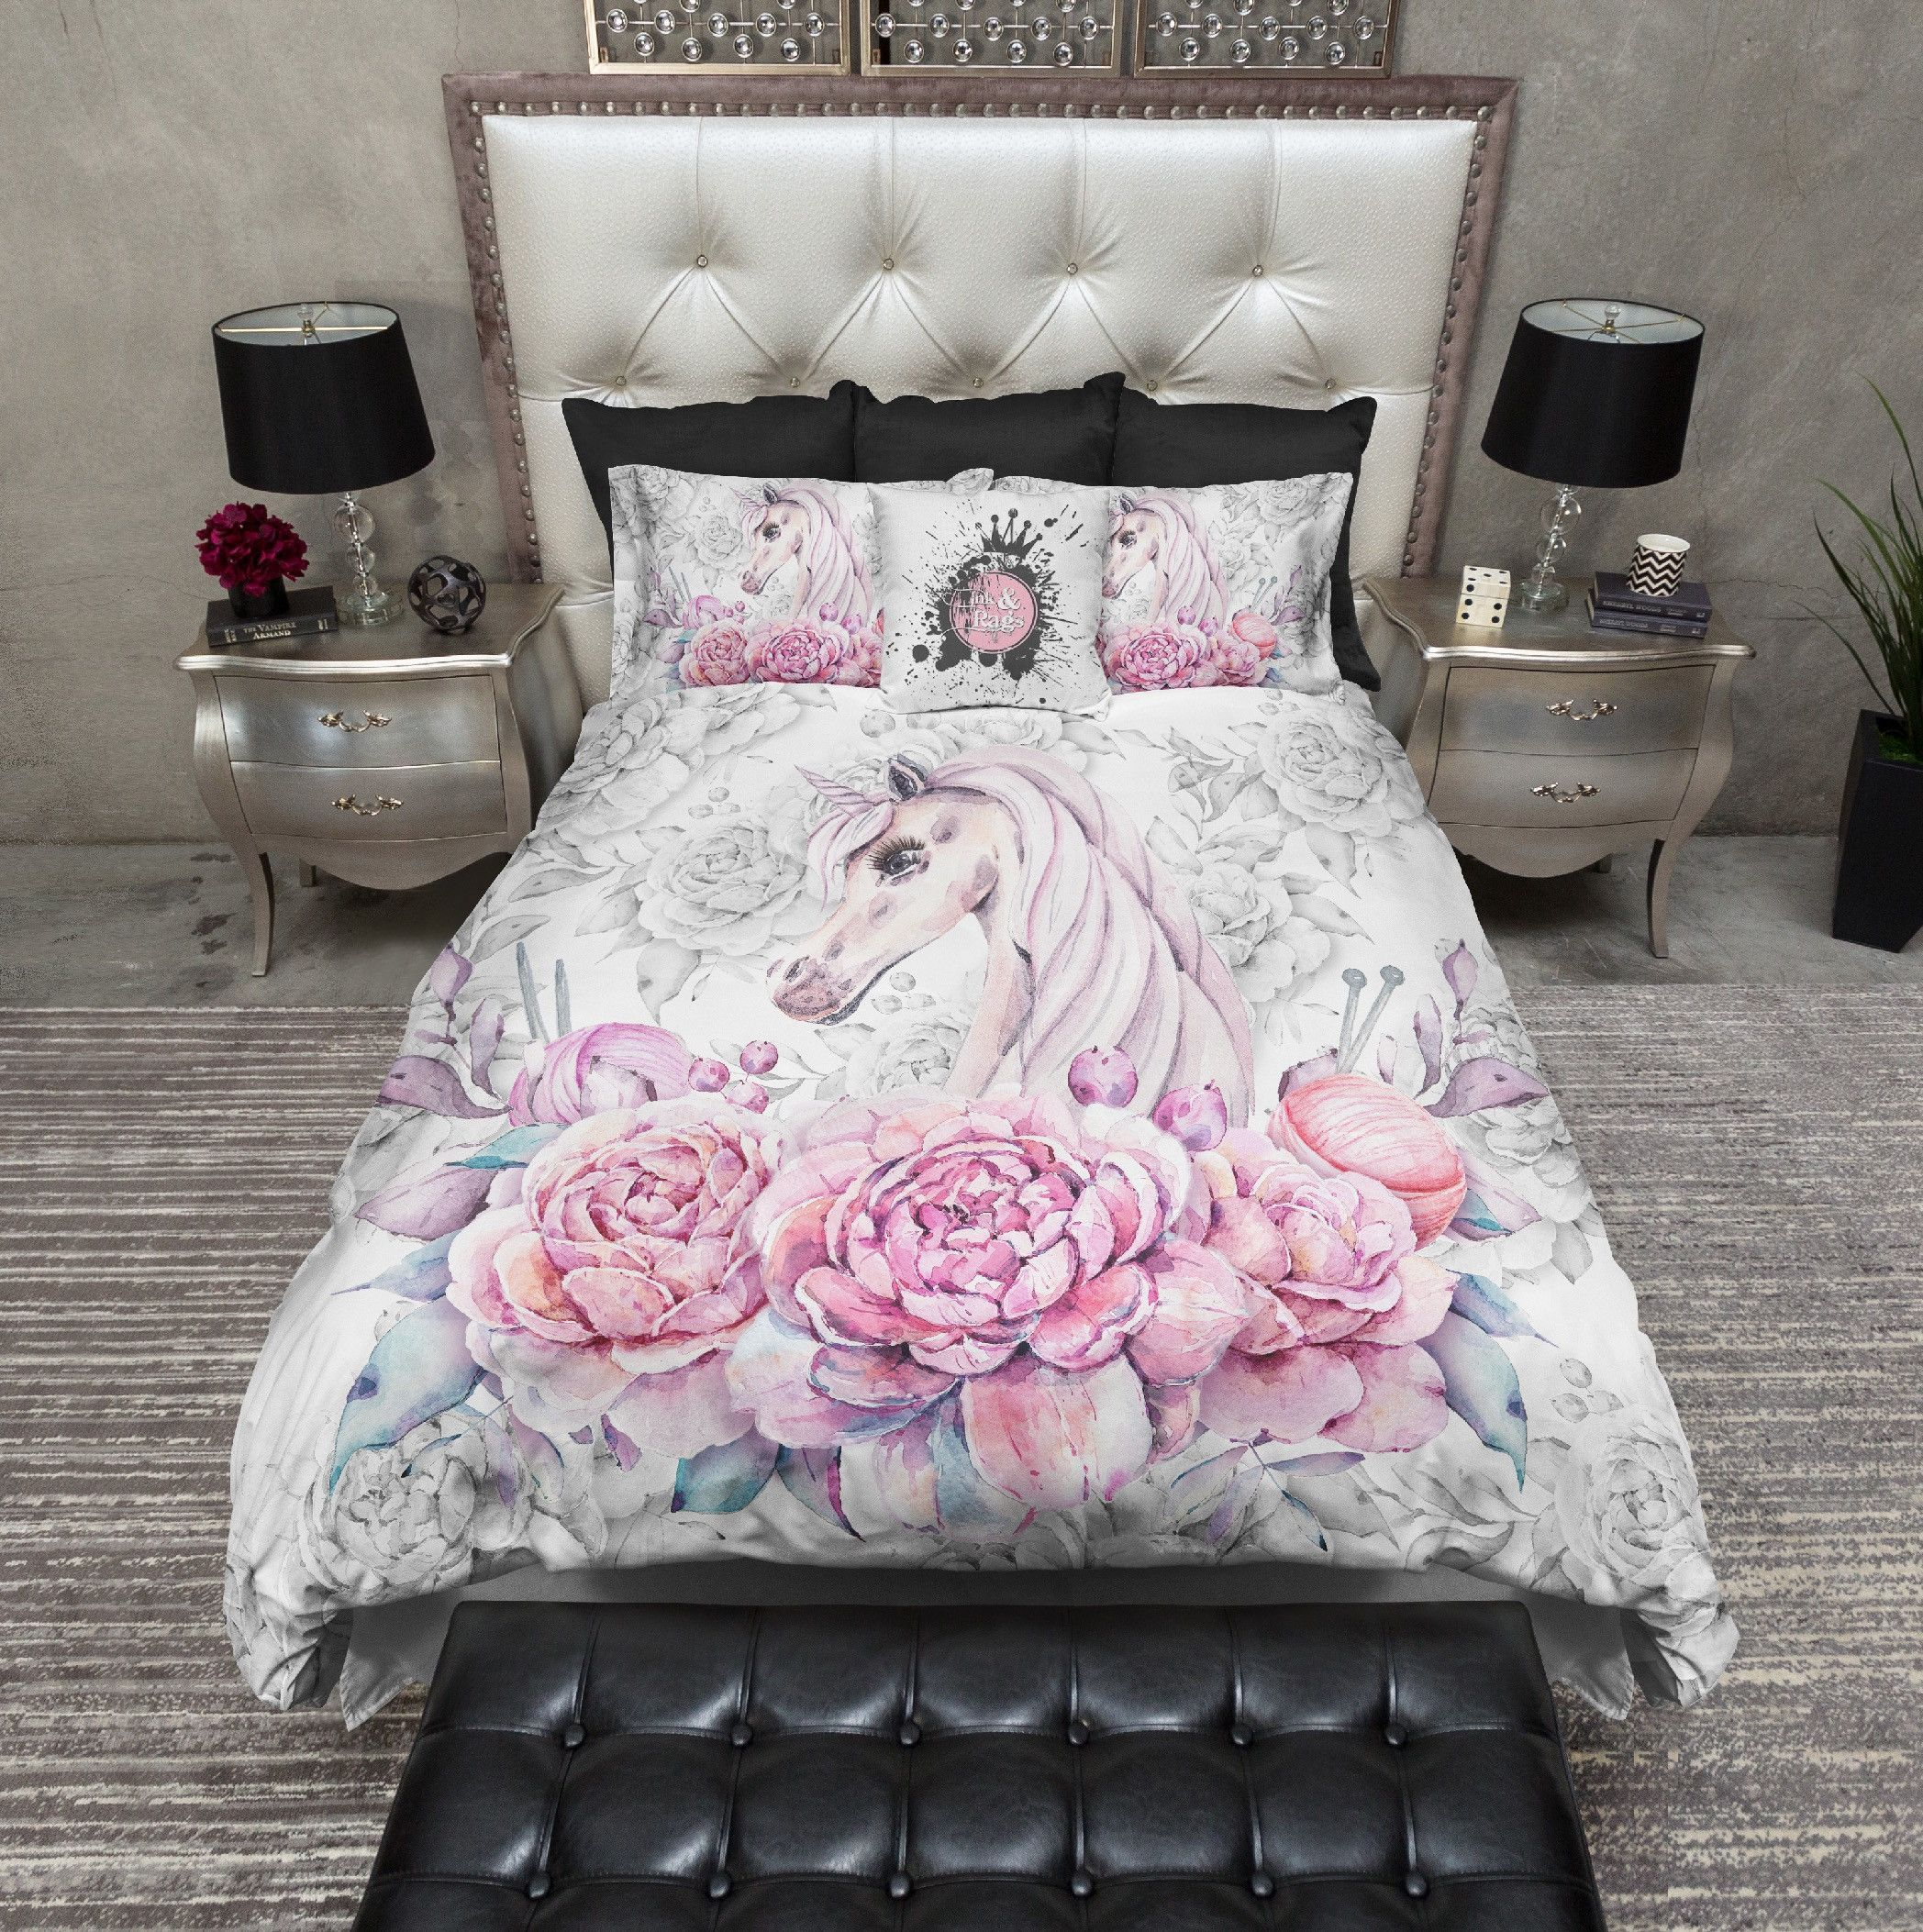 cover girls single duvet great hop in co bunny side trading little and bed set lamp a products